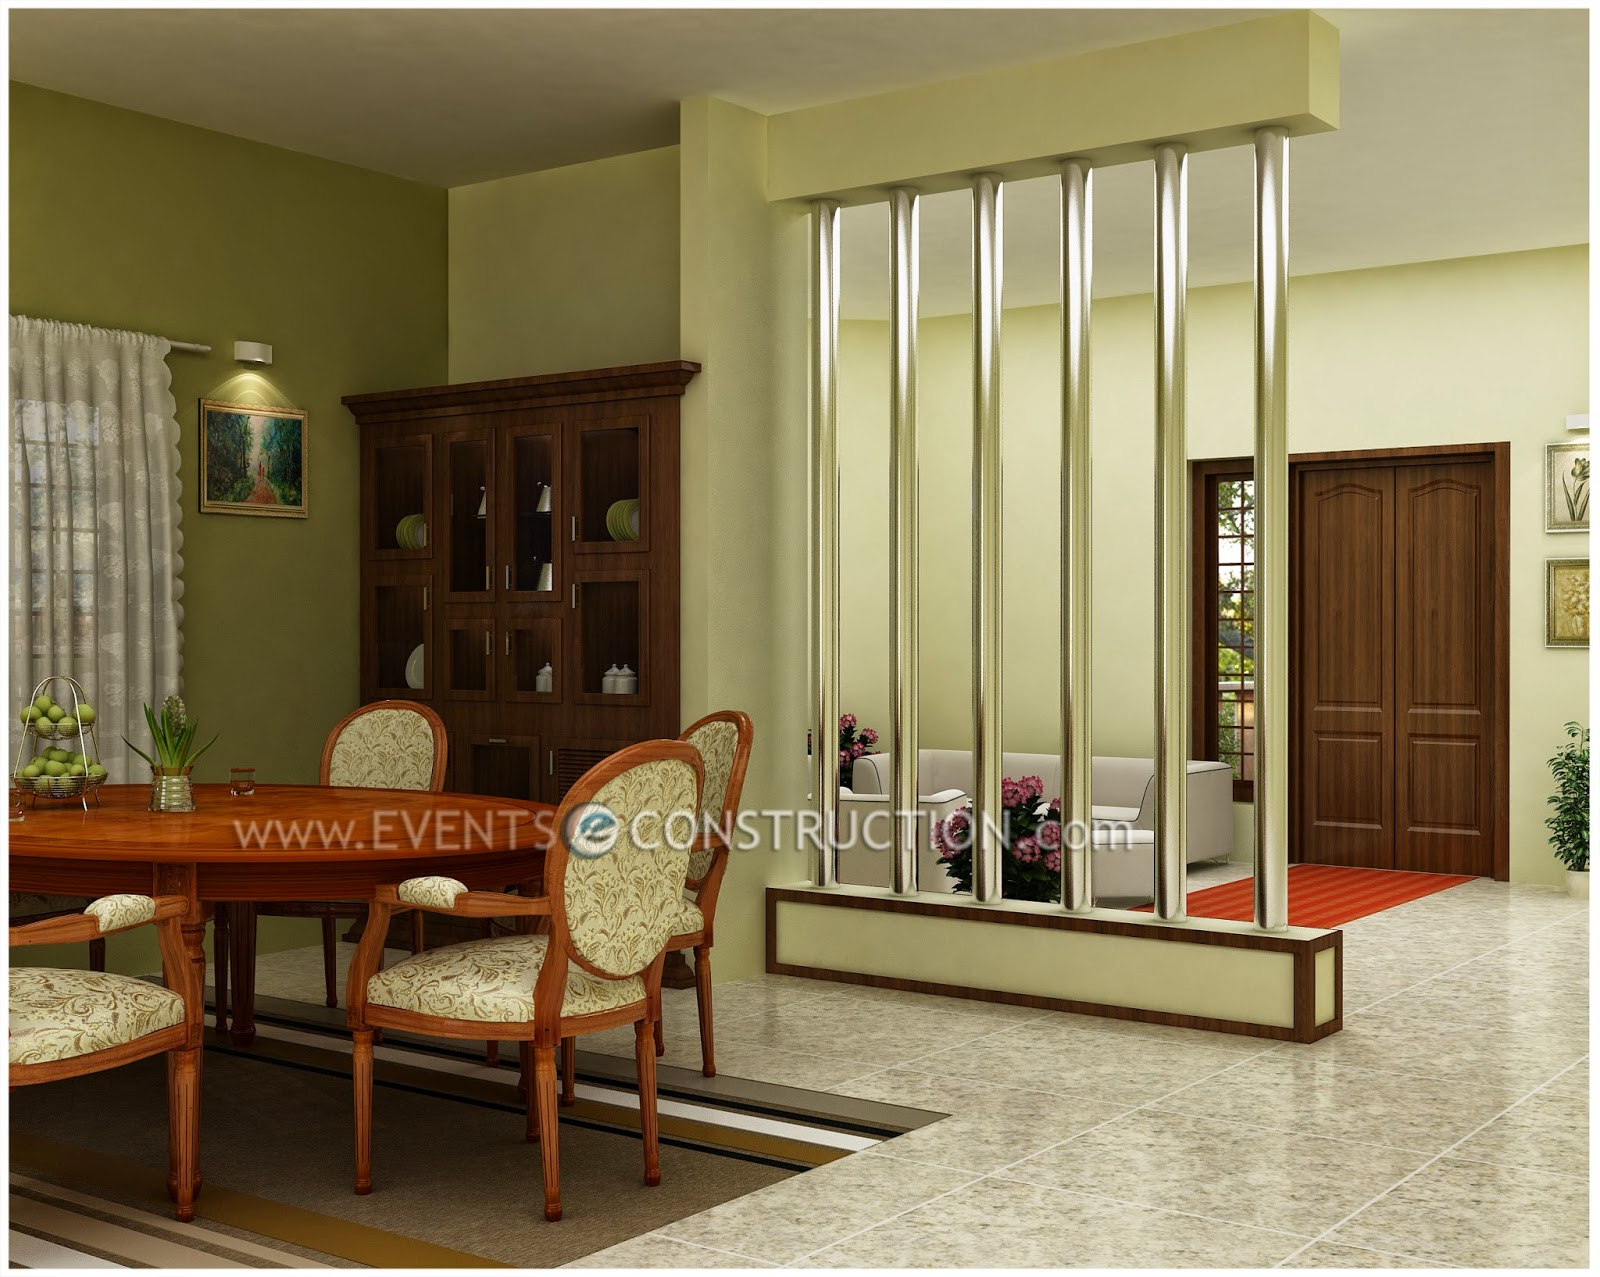 Evens construction pvt ltd living area and dining room for Dining room ideas kerala